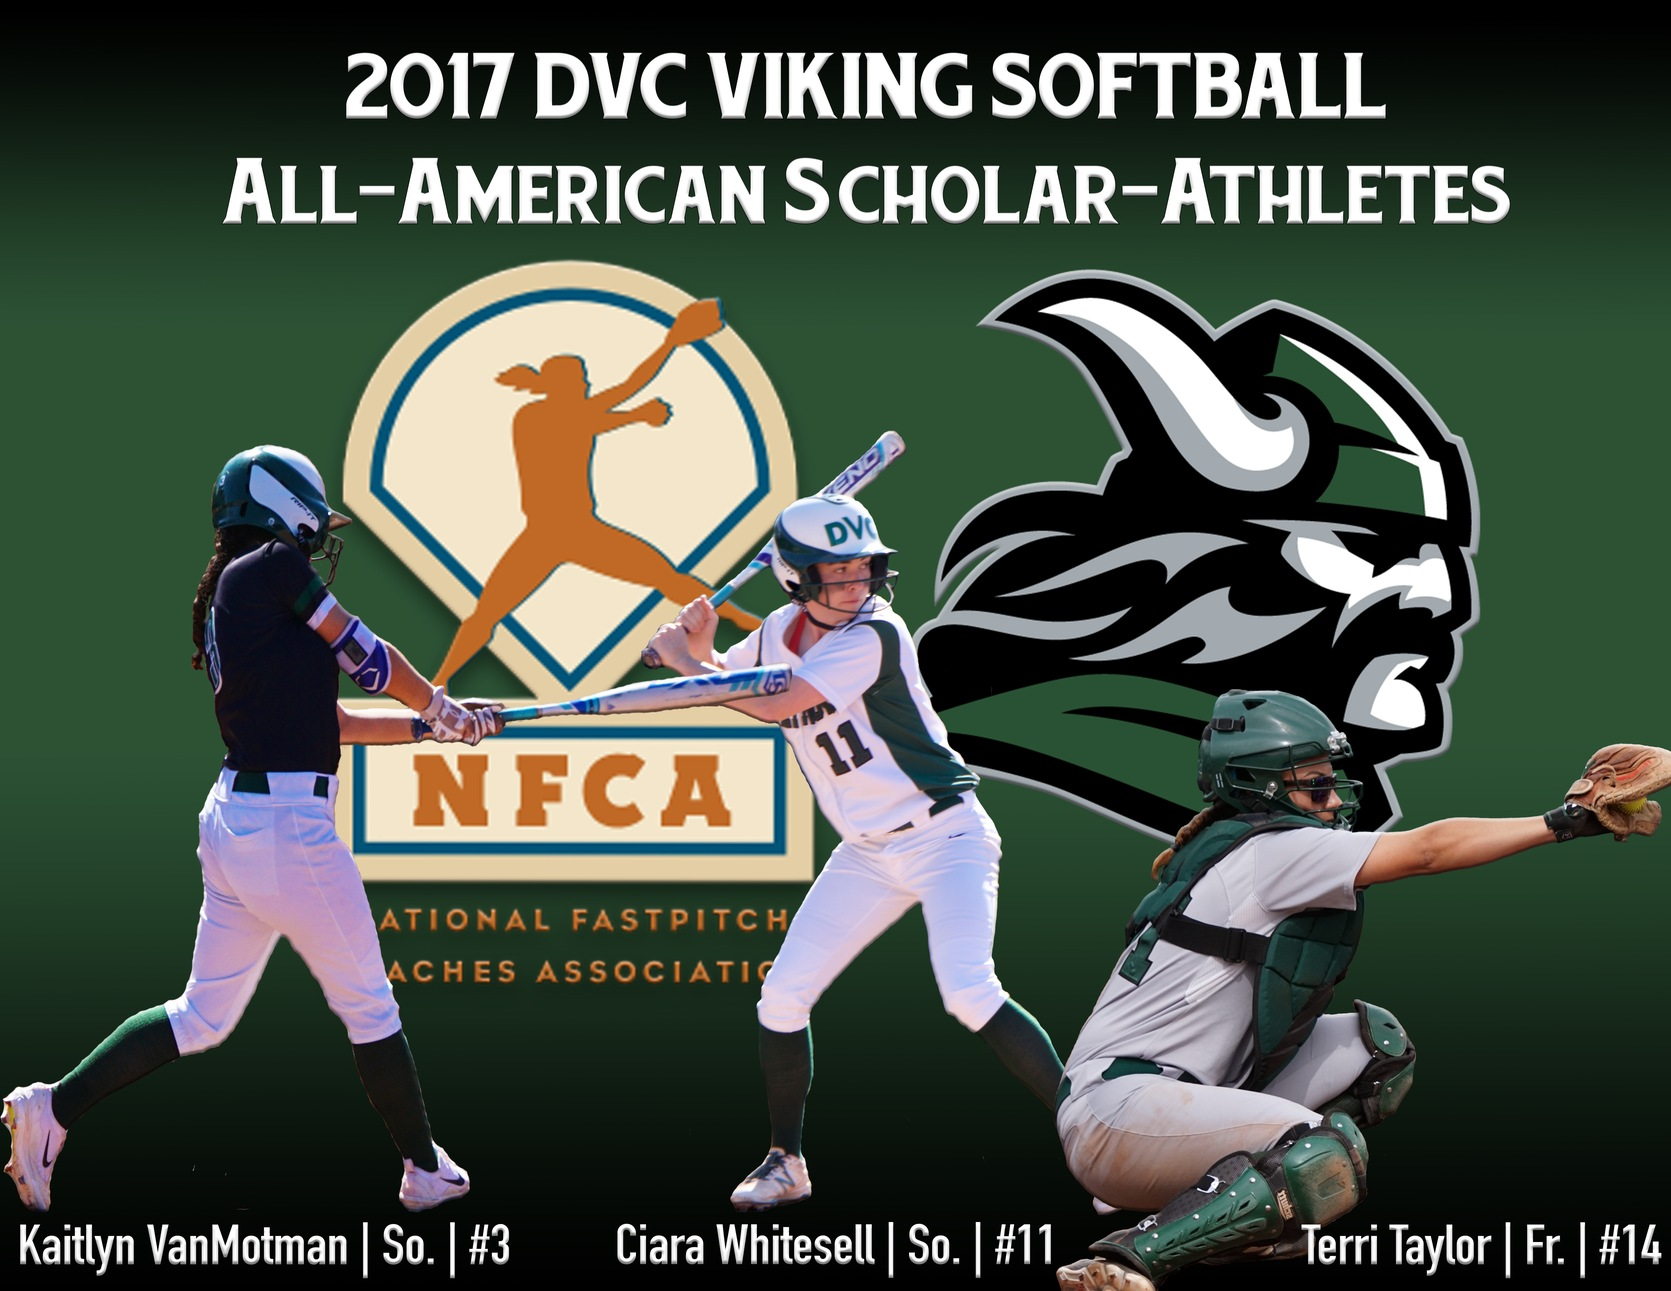 NFCA Honors 3 Vikings with All-America Scholar Athlete Award